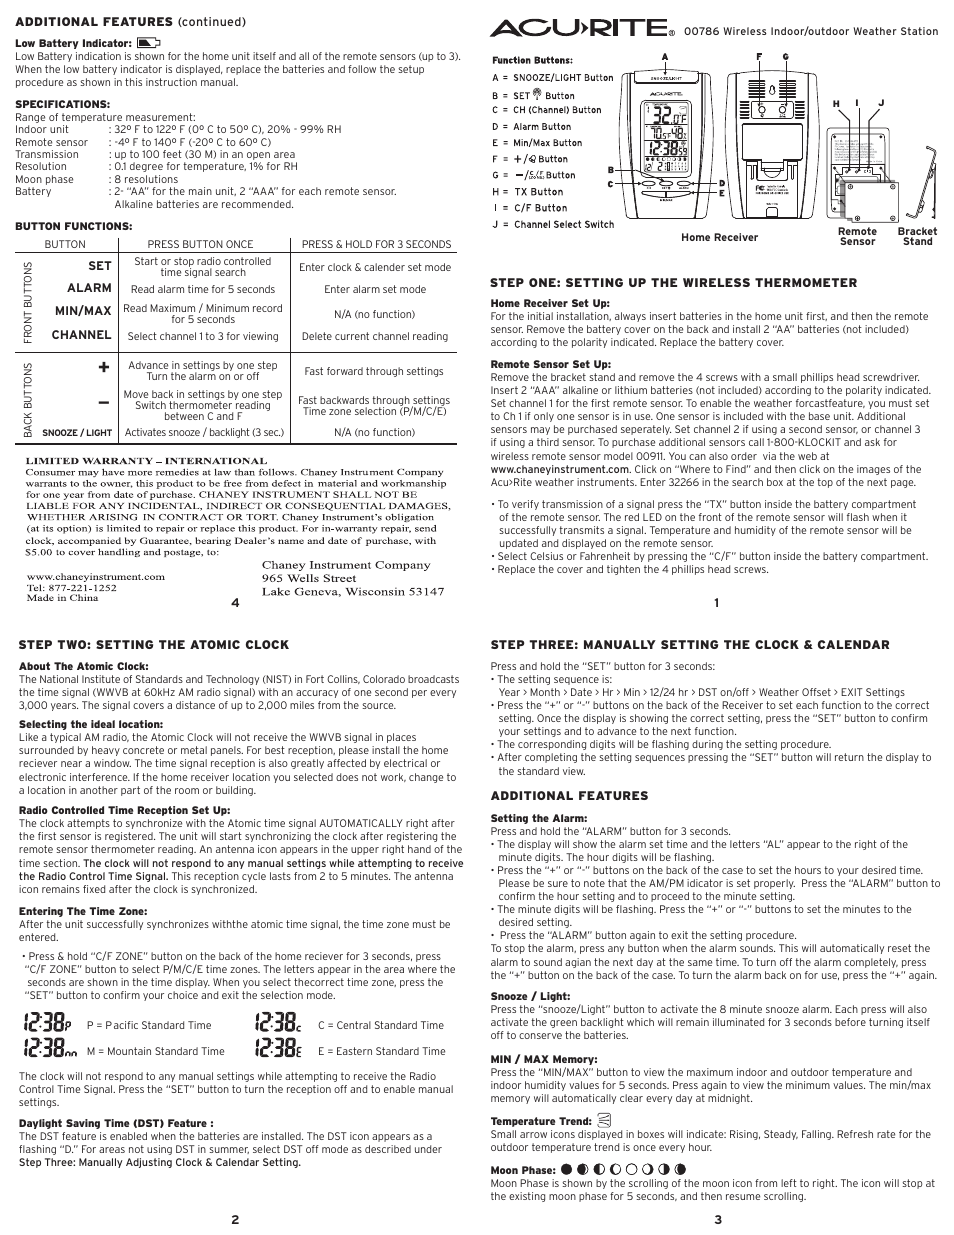 Acurite 00786 Thermometer User Manual Manual Guide